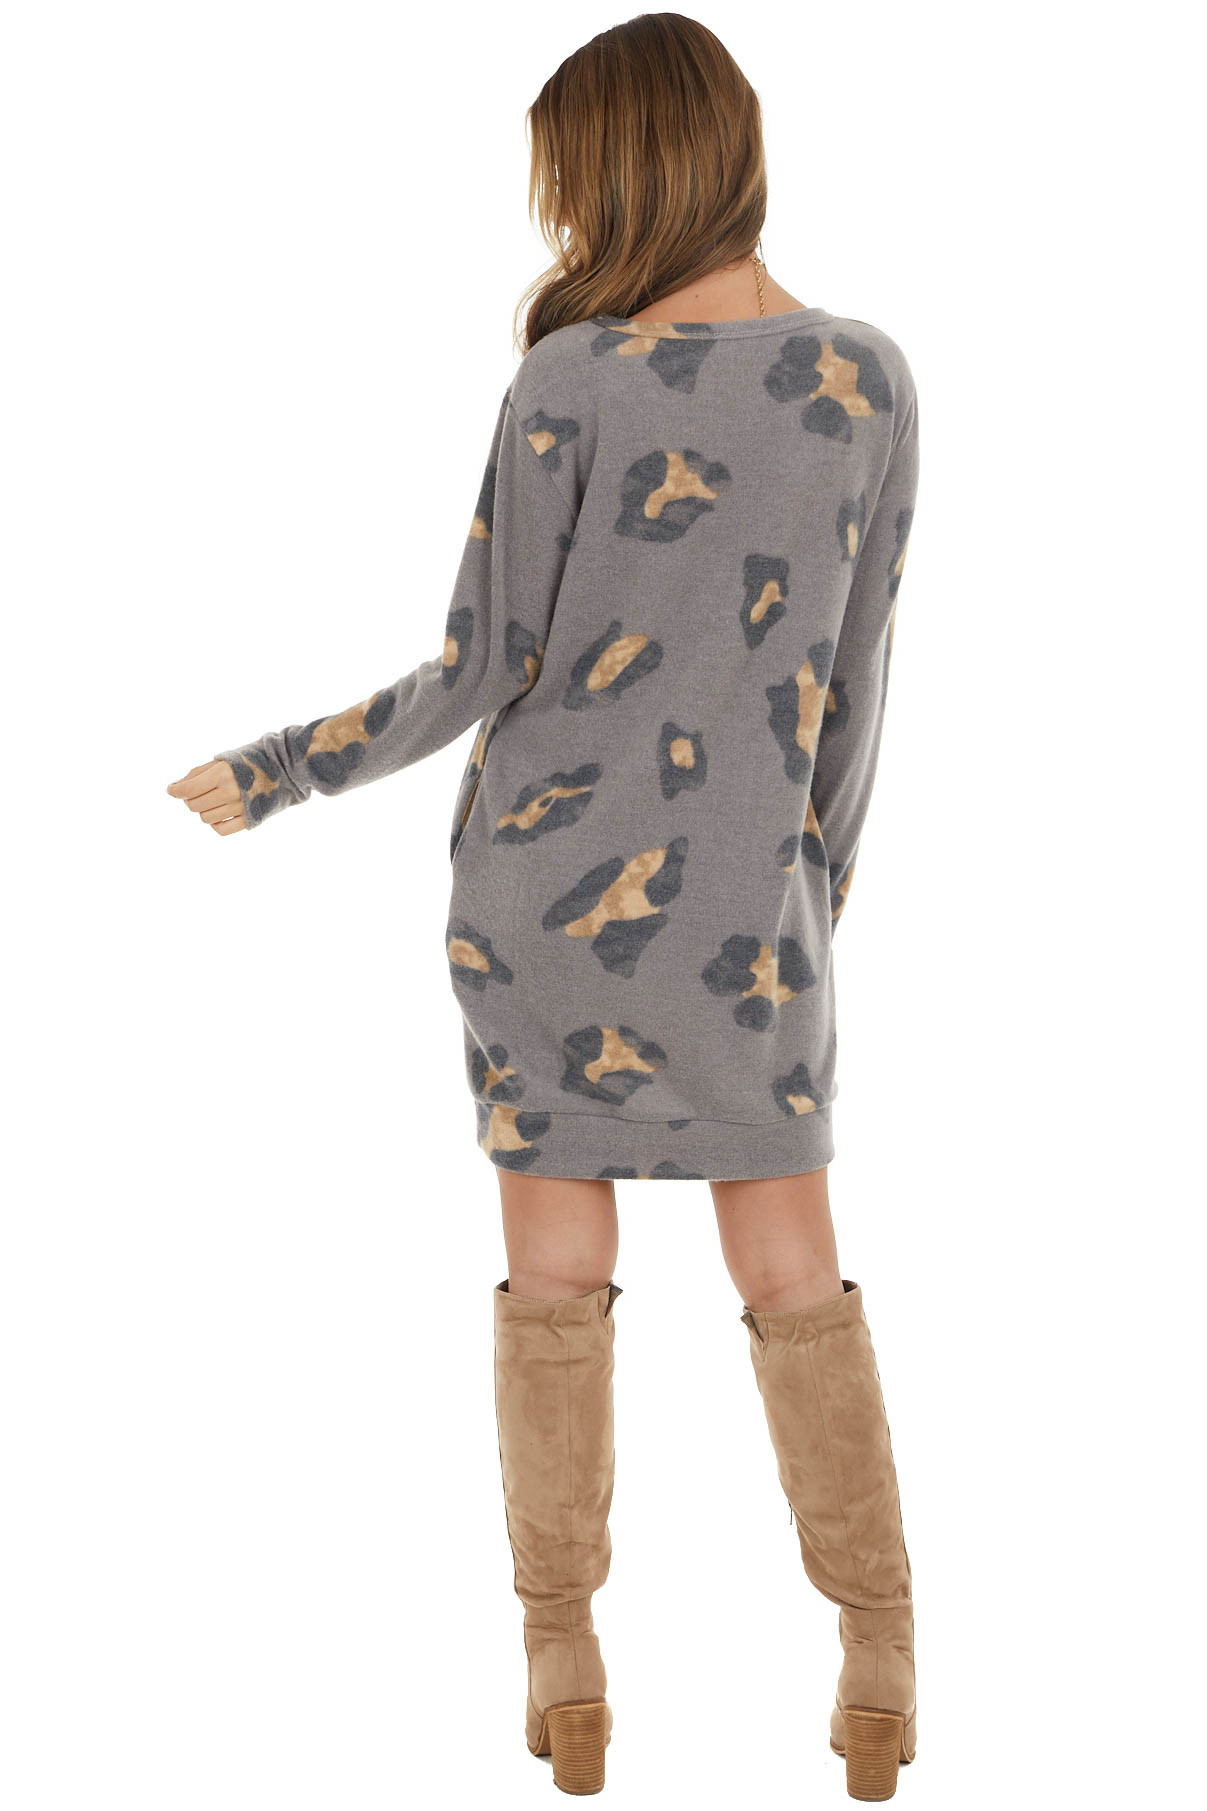 Stone Grey Long Sleeve Leopard Print Dress with Pockets